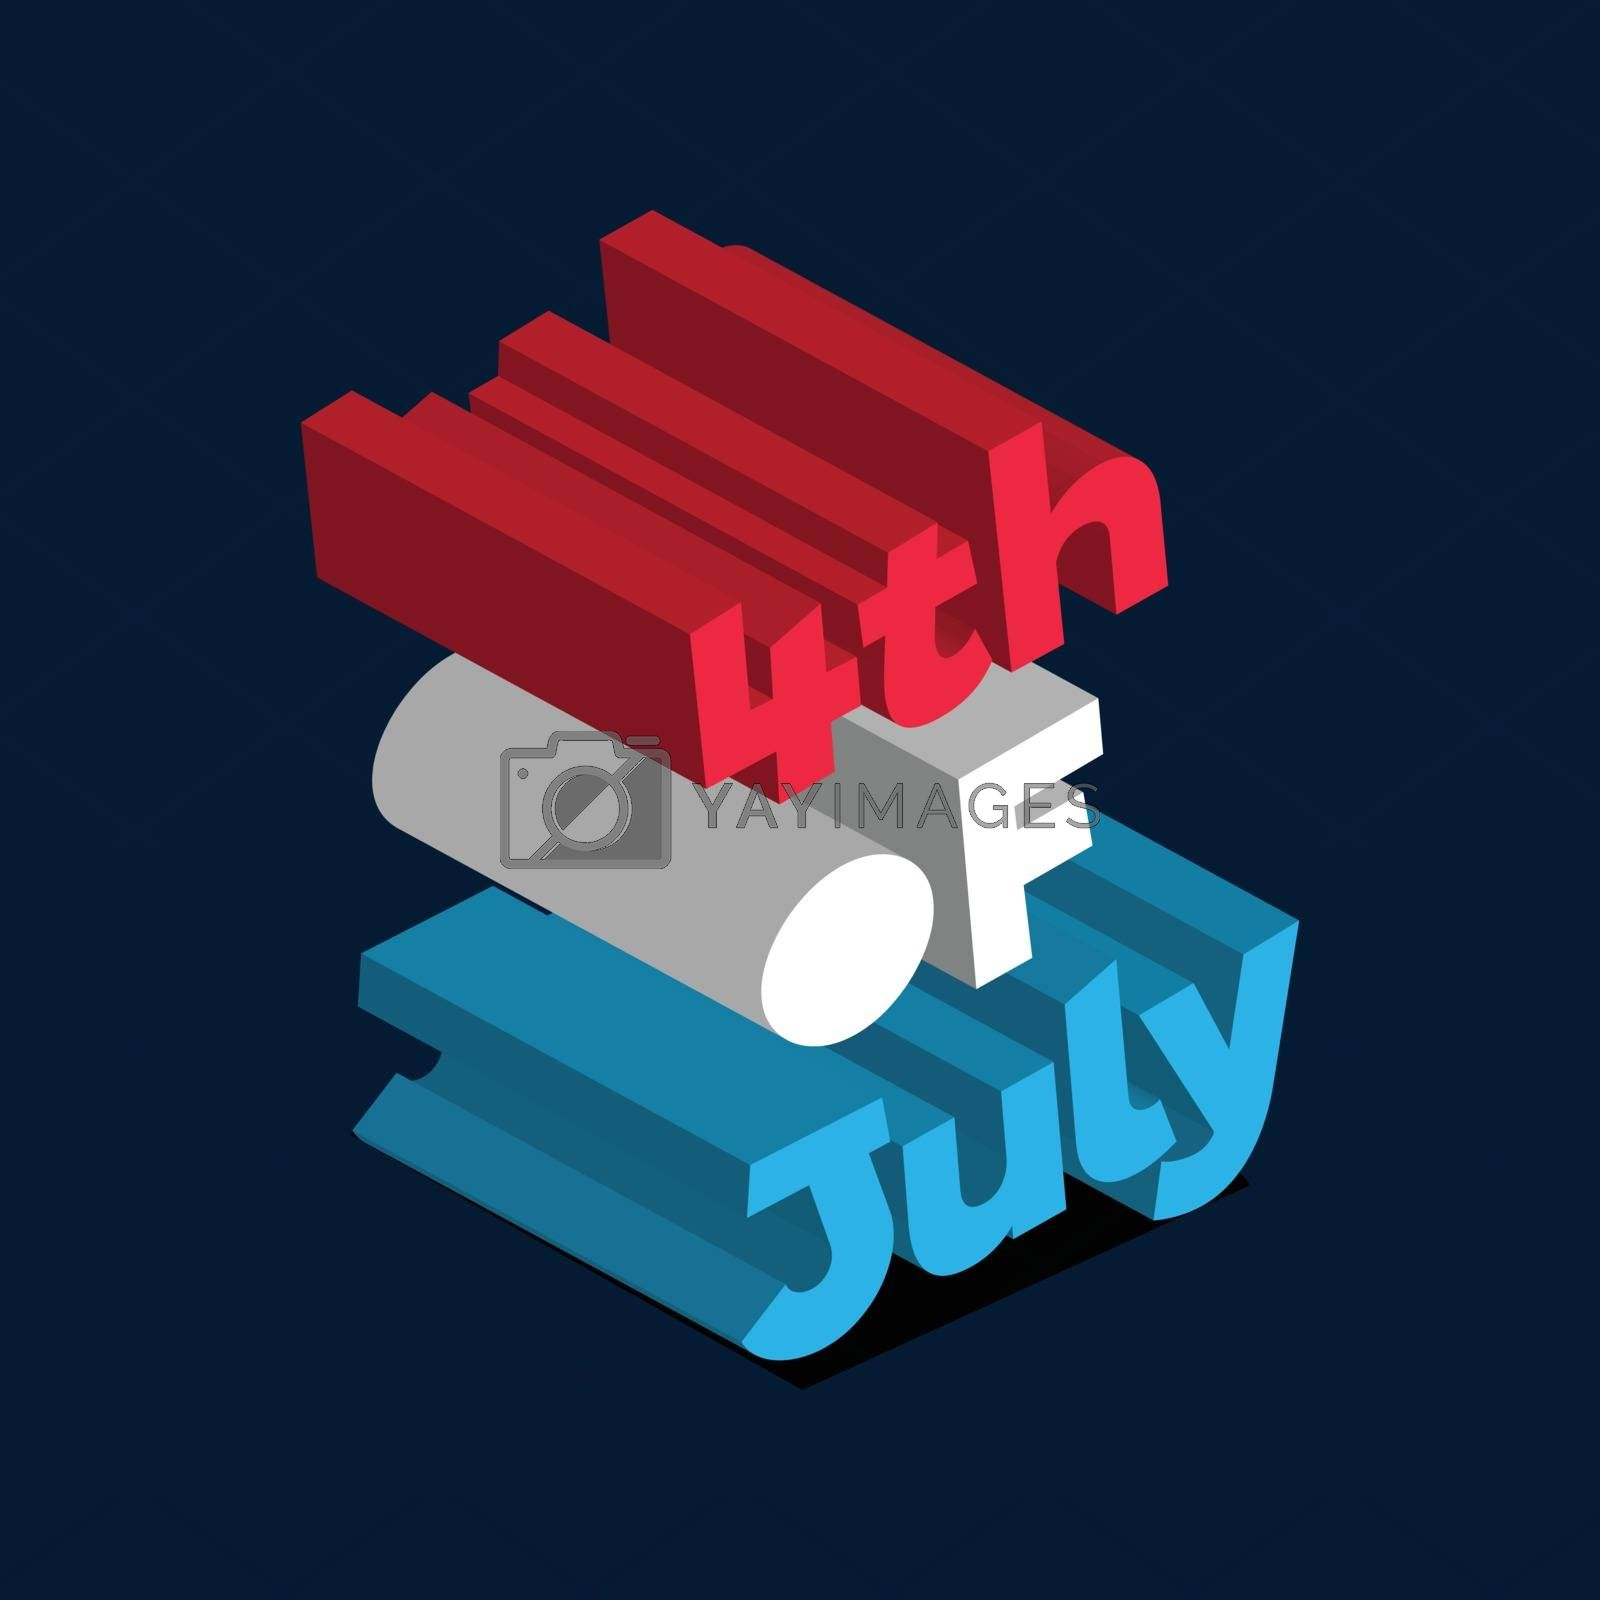 Colorful 3D text 4th Of July on blue background for Happy Independence Day. Can be used as poster or template design.